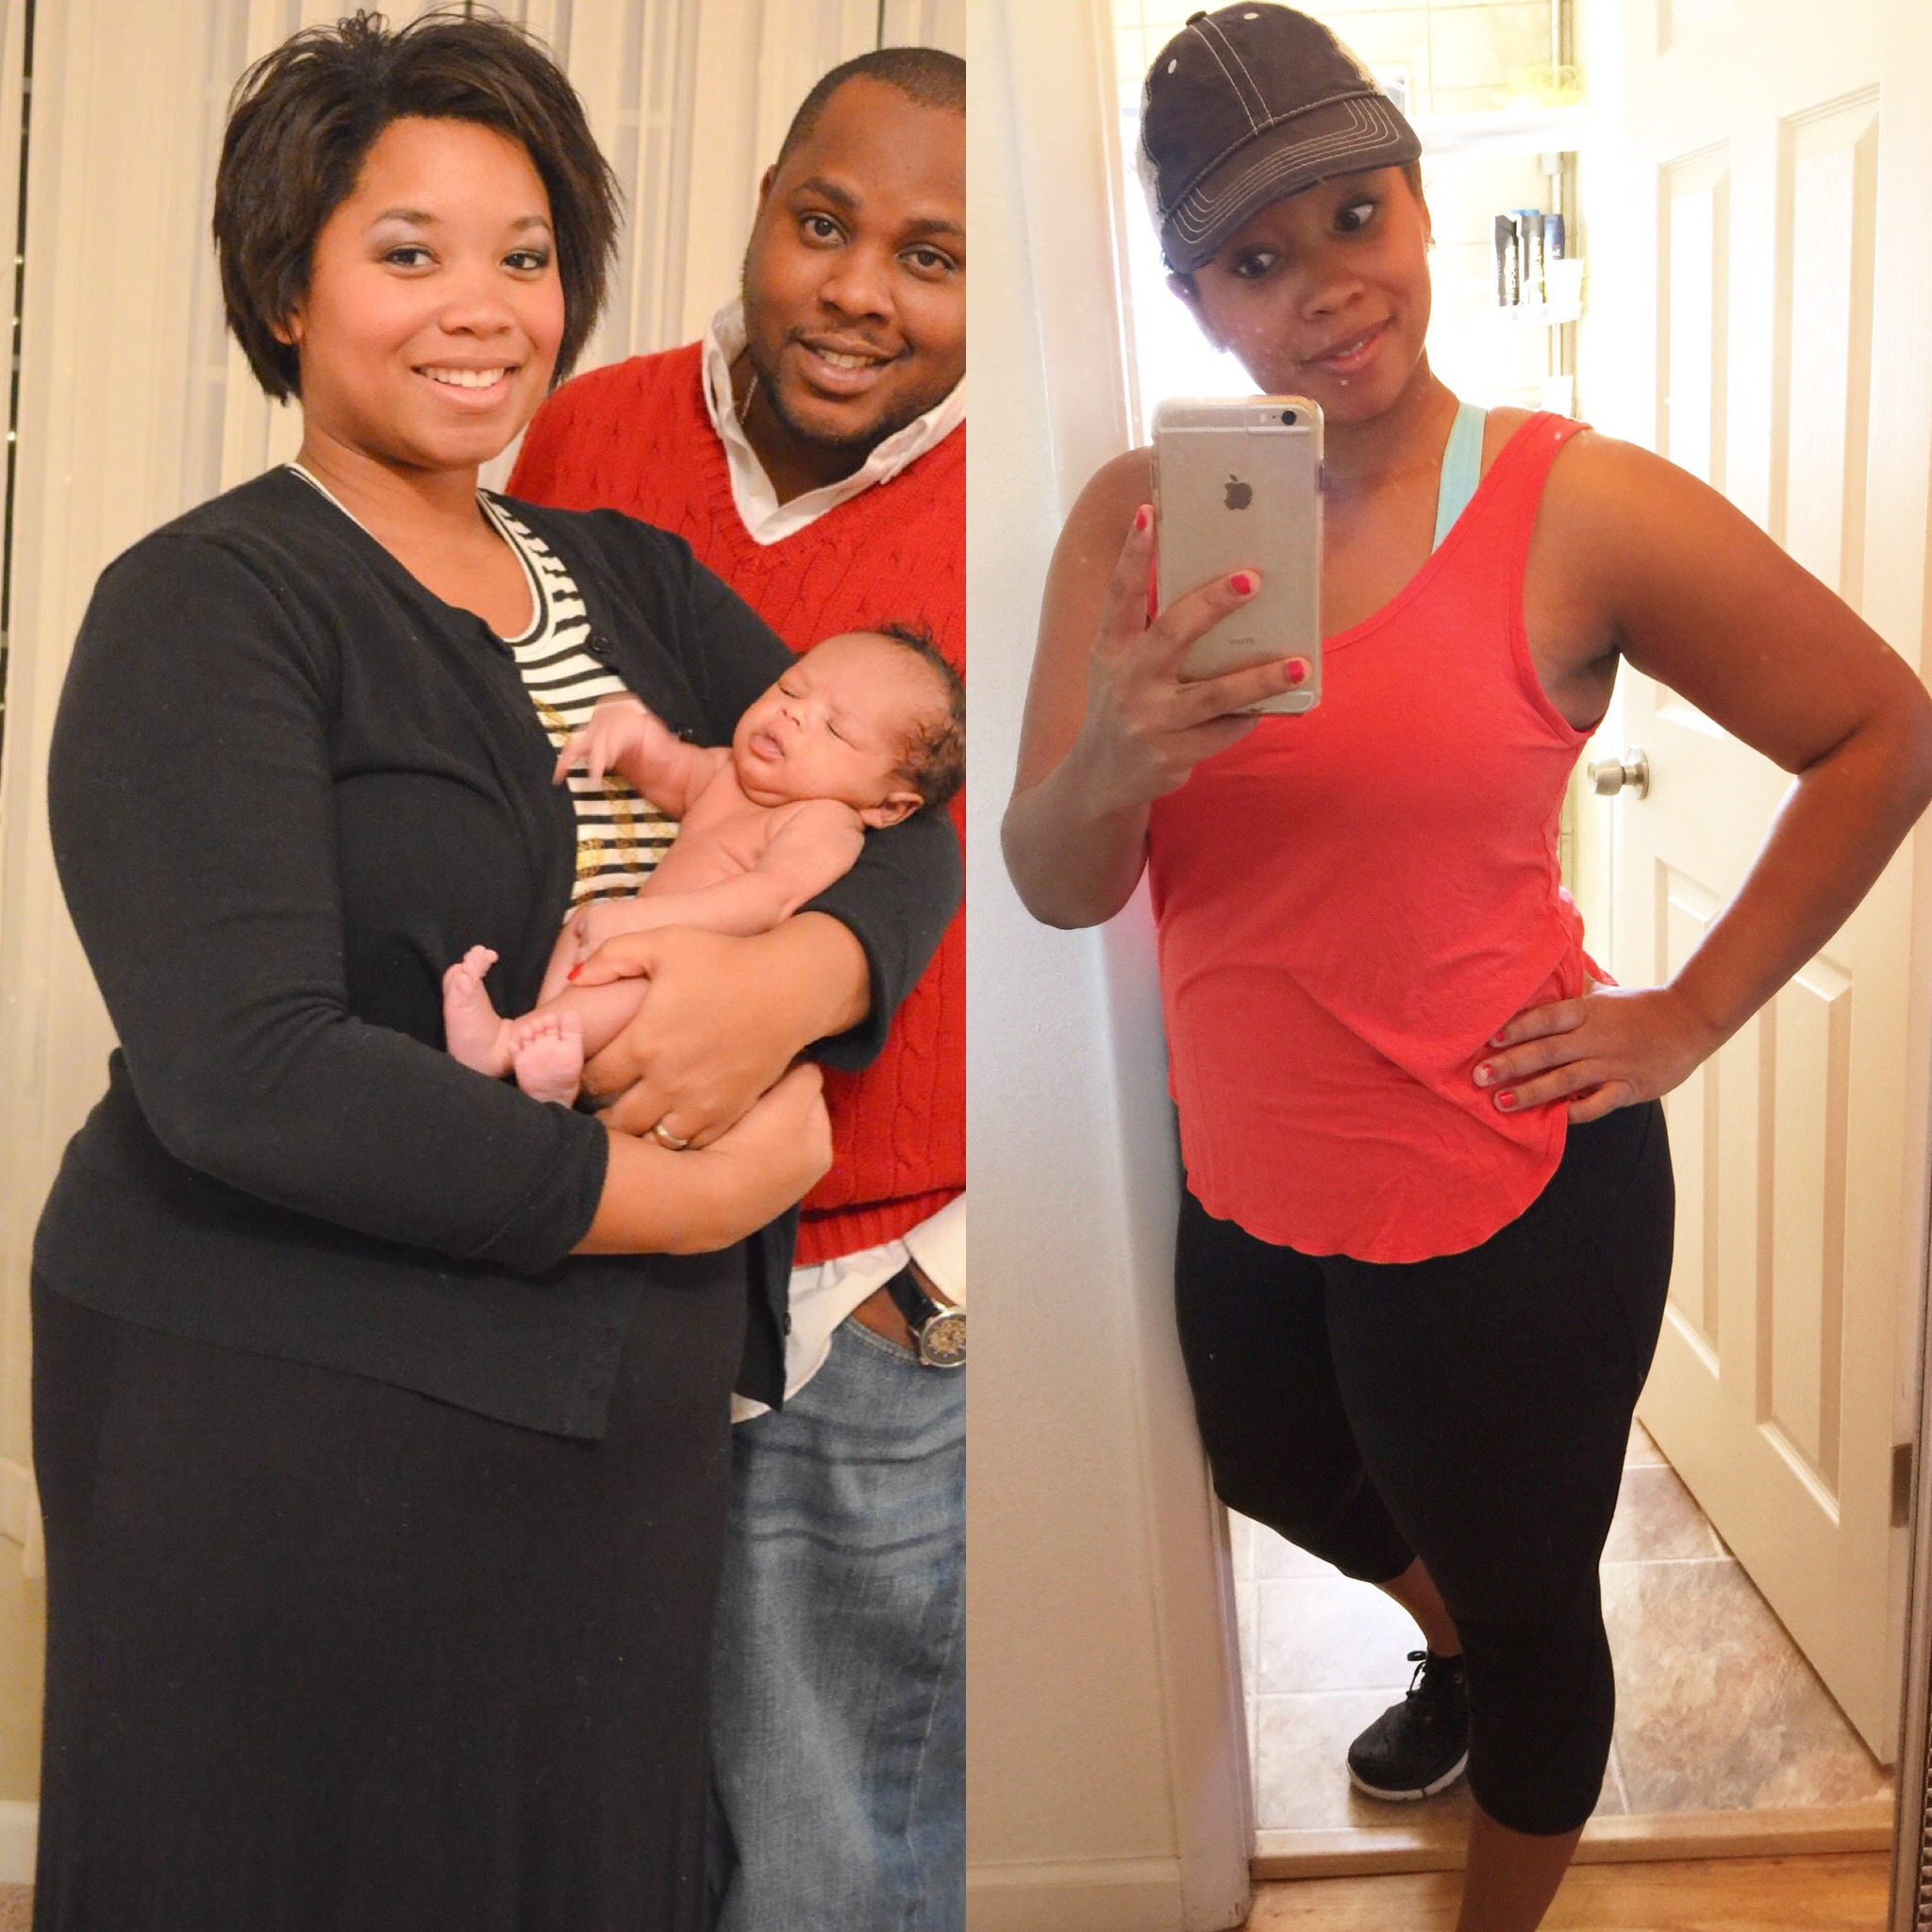 Great success story! Read before and after fitness transformation stories from women and men who hit weight loss goals and got THAT BODY with training and meal prep. Find inspiration, motivation, and workout tips | 60 Pounds Lost: Young mom of 4 getting fit!